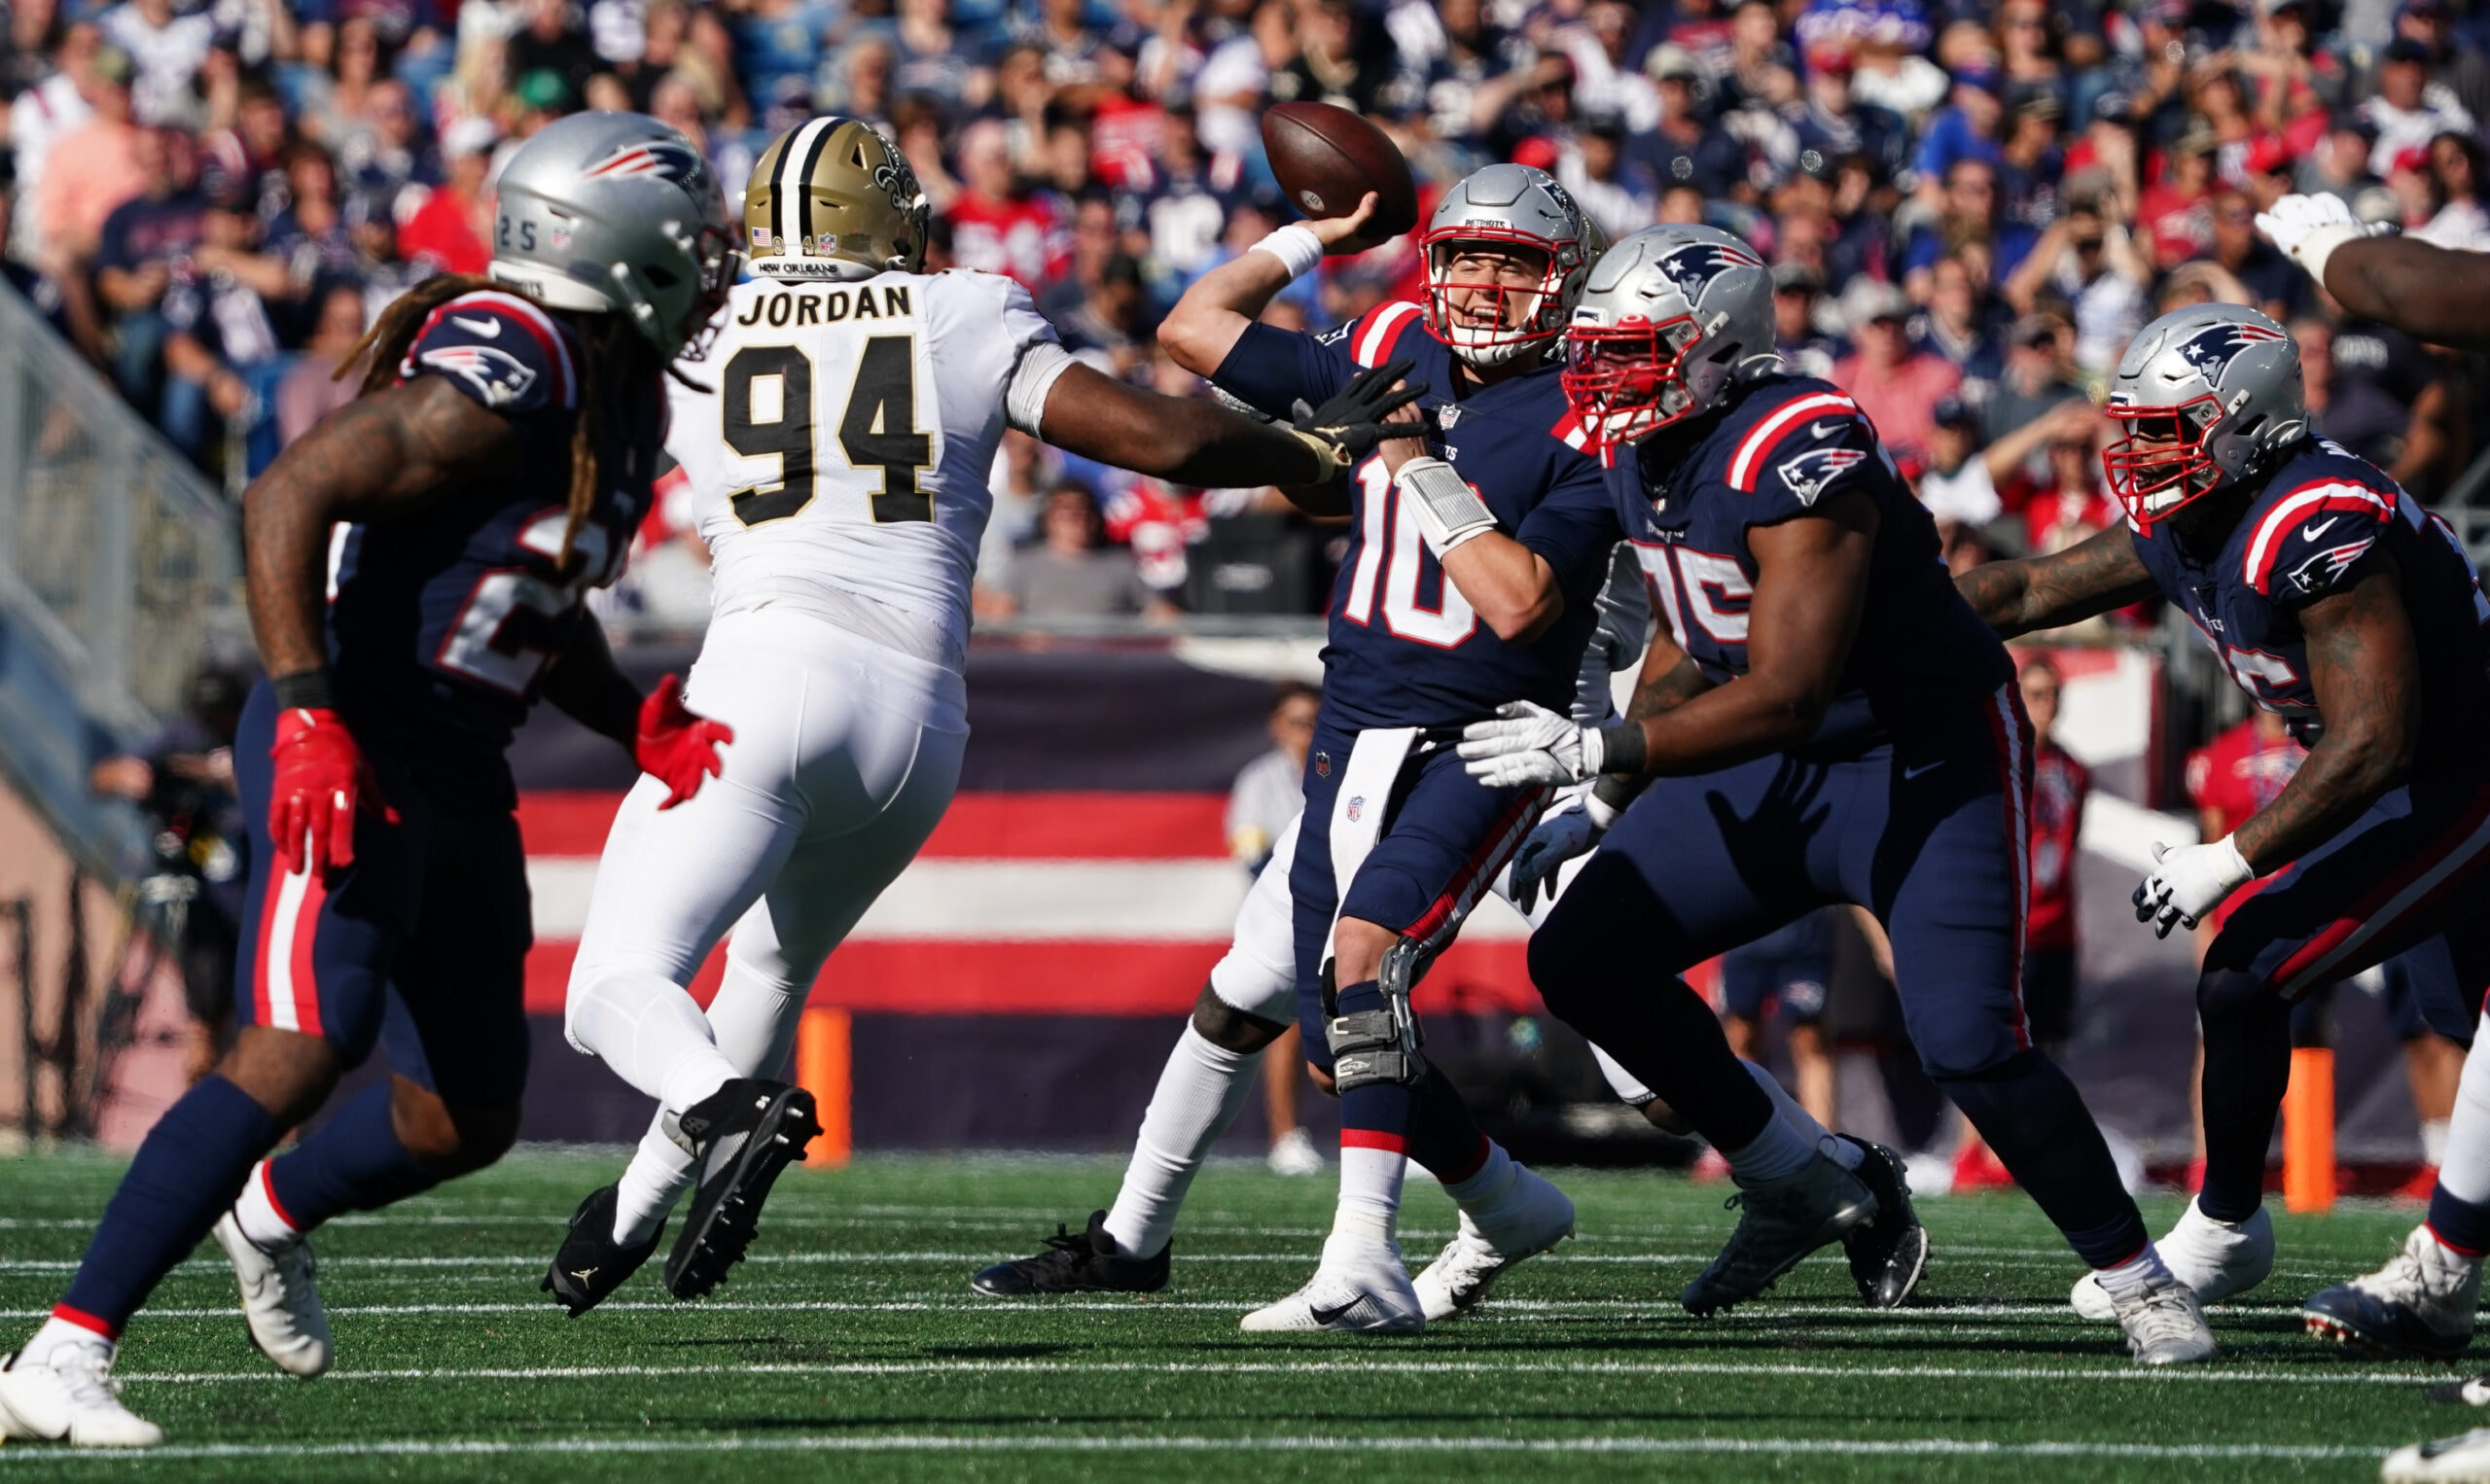 Sep 26, 2021; Foxborough, Massachusetts, USA; New England Patriots quarterback Mac Jones (10) throws a pass against the New Orleans Saints during the second half at Gillette Stadium. Mandatory Credit: David Butler II-USA TODAY Sports